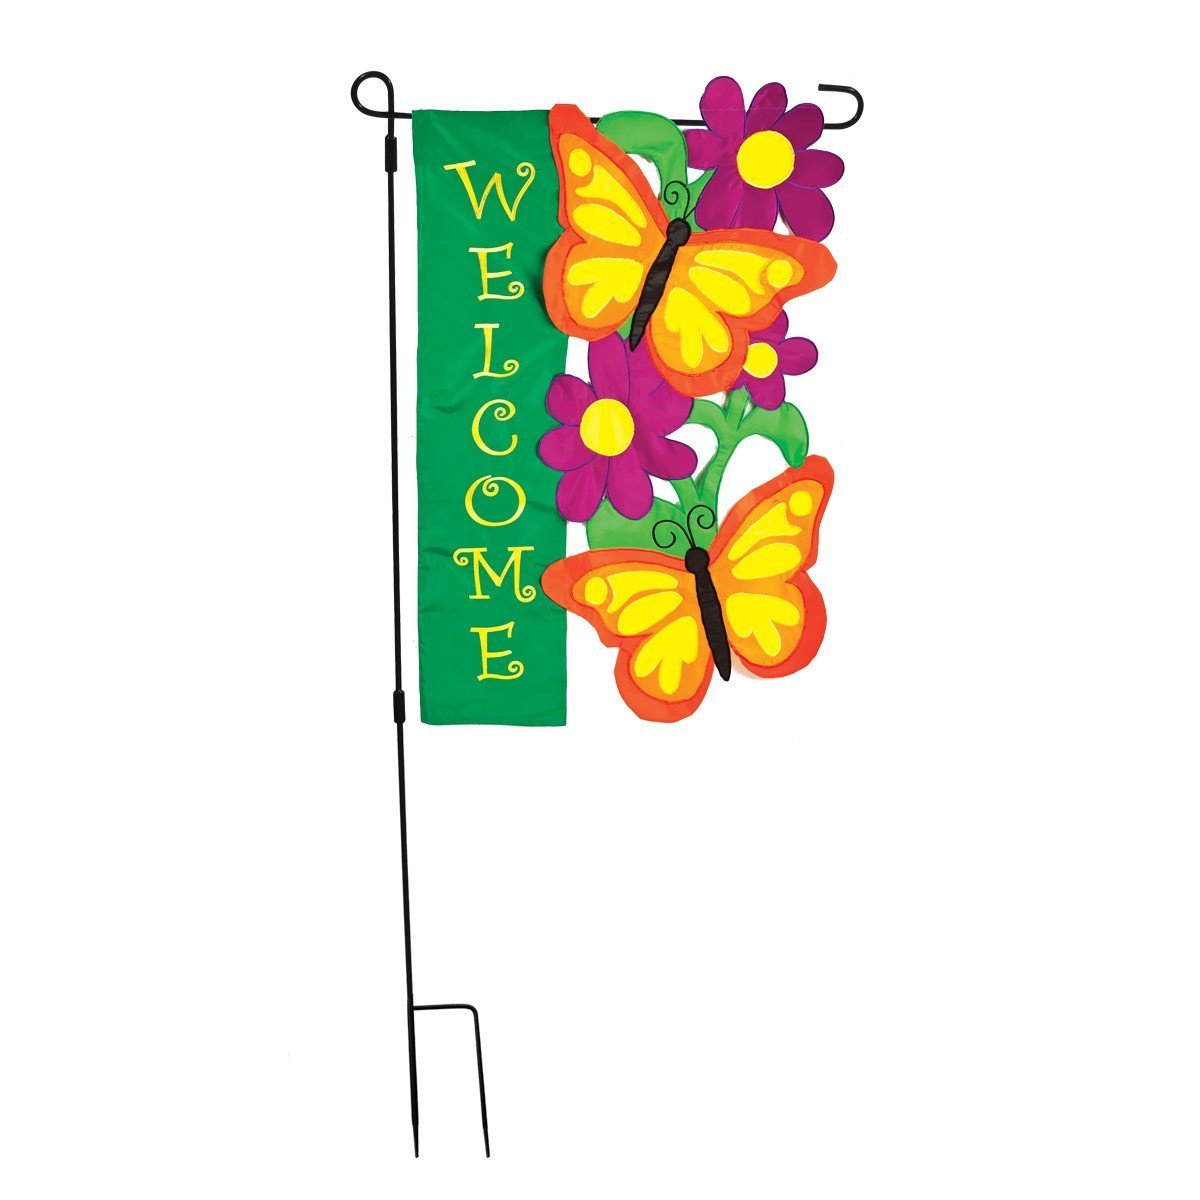 3-Piece Large Garden Flag Pole 75.75in x 37.25in